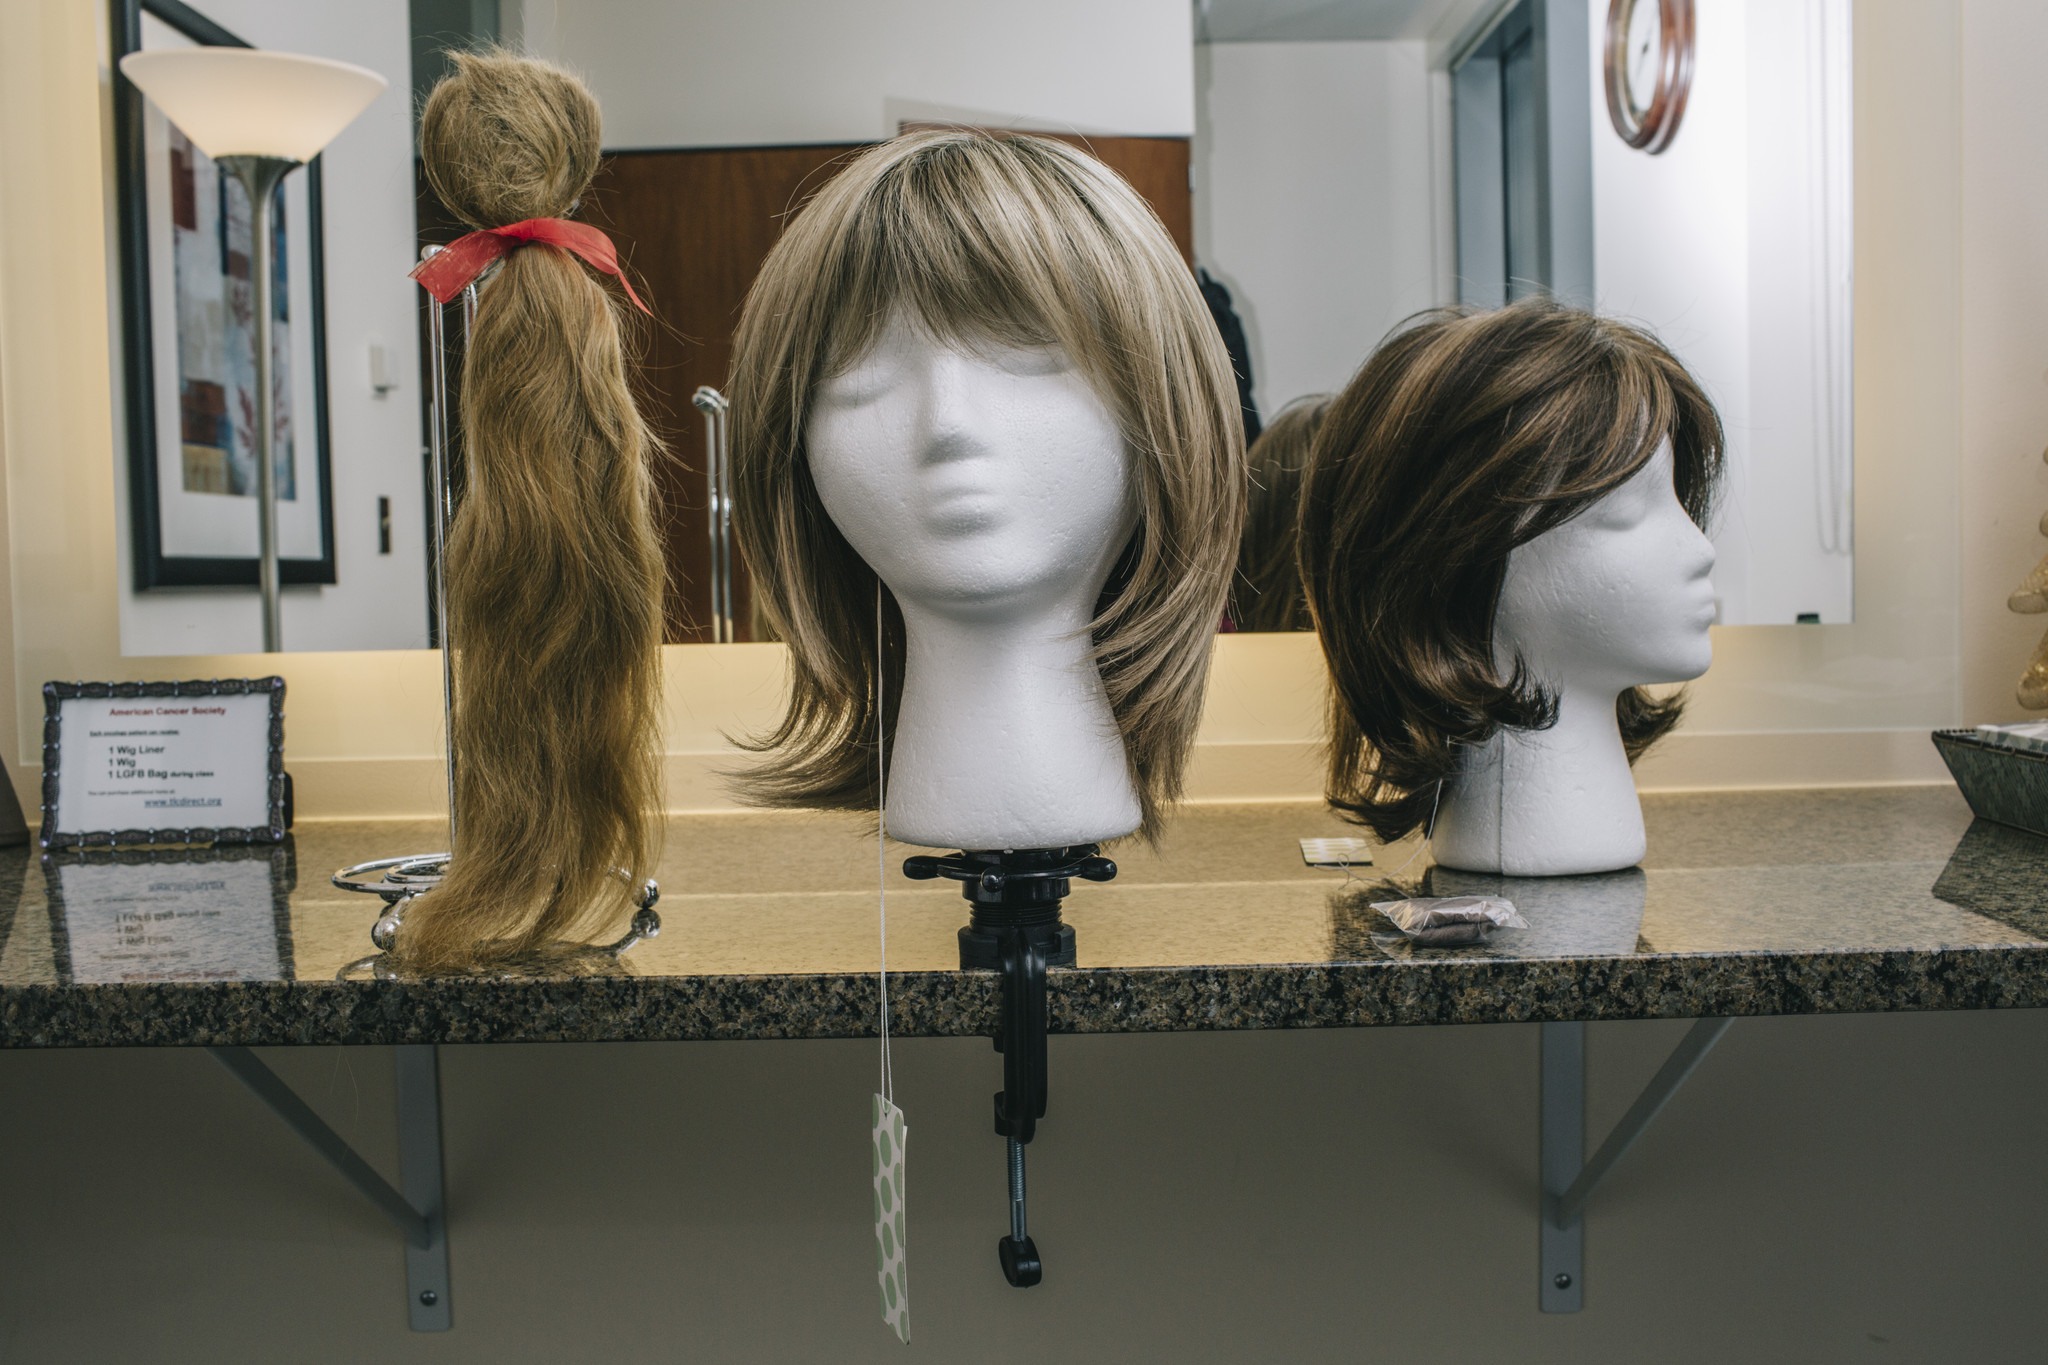 Hair Donation Comparing Pantene Beautiful Lengths Wigs For Kids And Locks Of Love Redeye Chicago